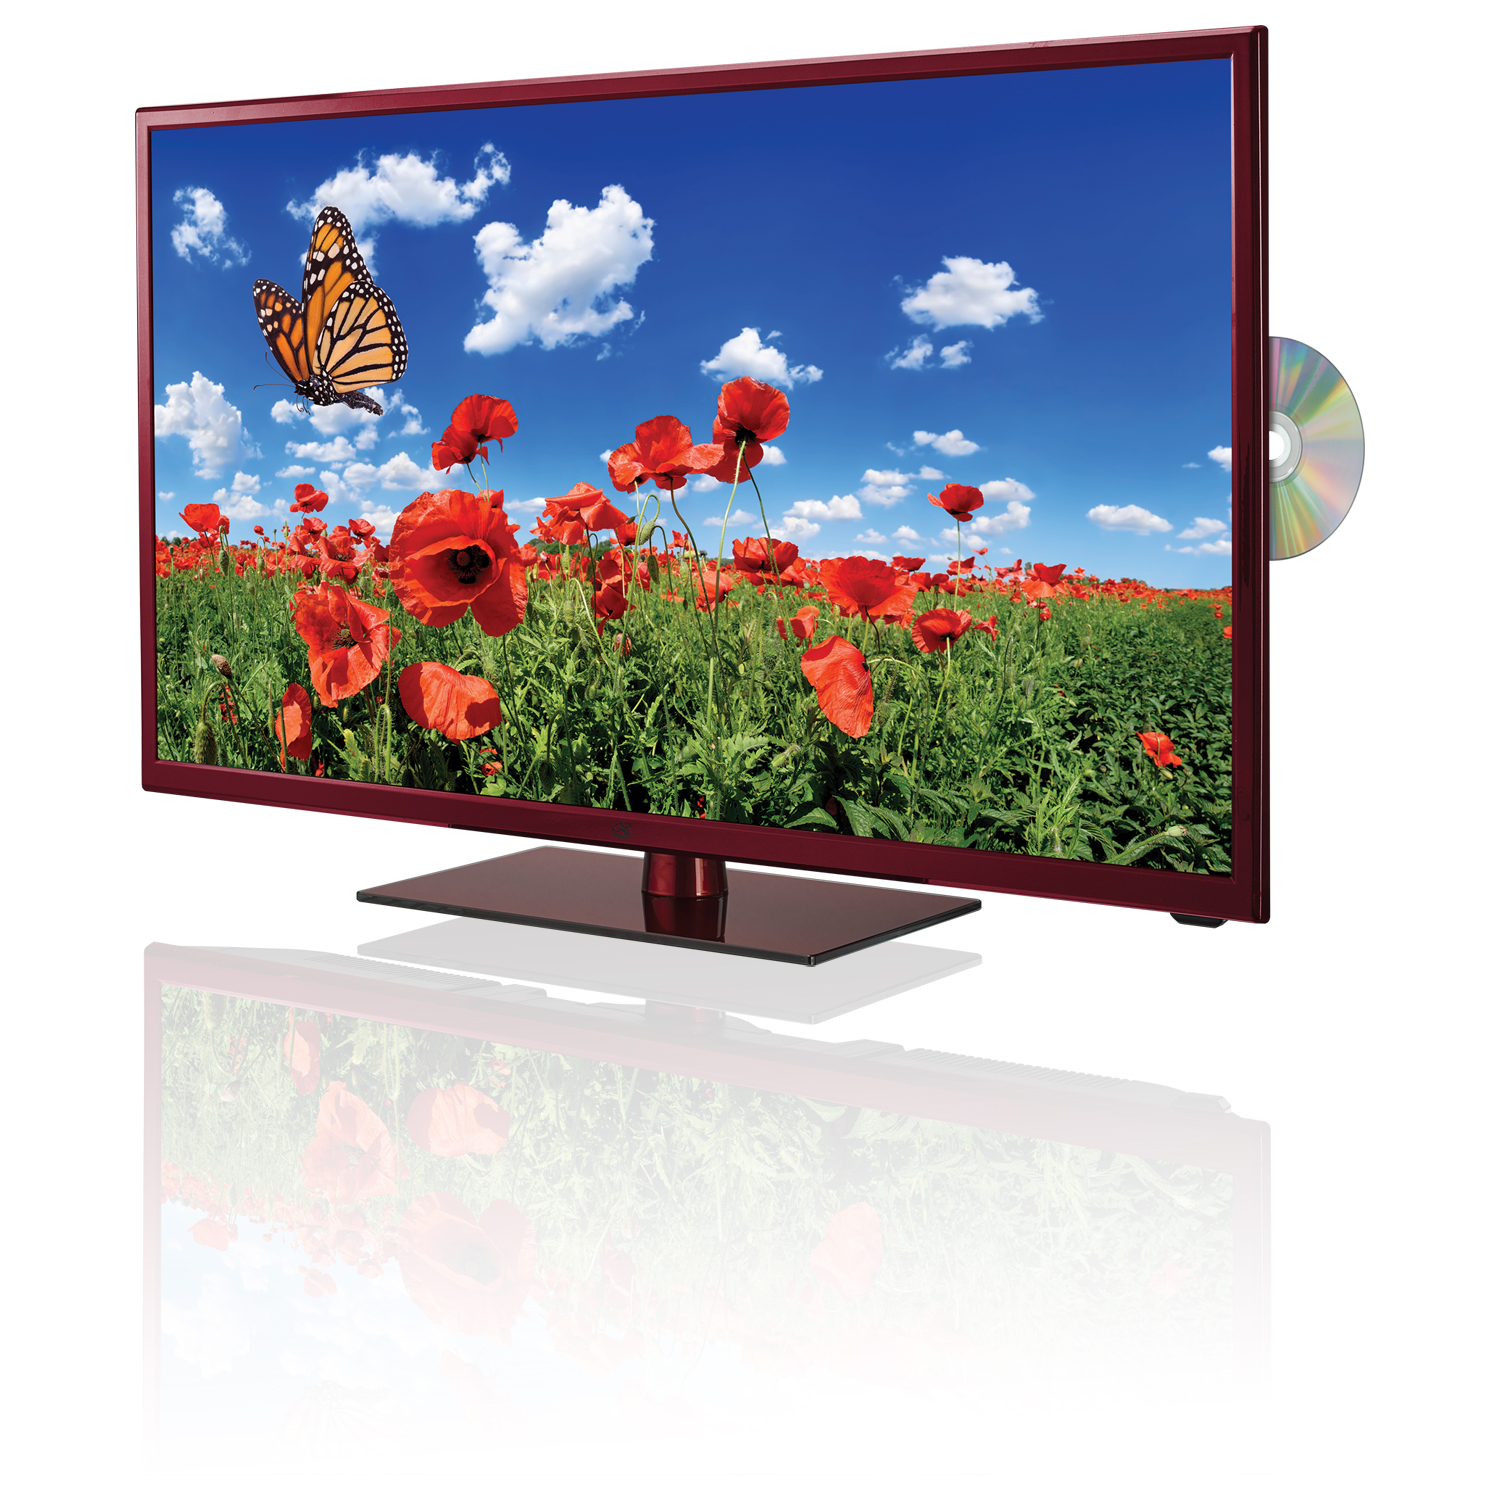 "GPX 32"" Class Full HD, DLED TV with DVD Player 1080p, 60Hz (TDE3274RP) by GPX"